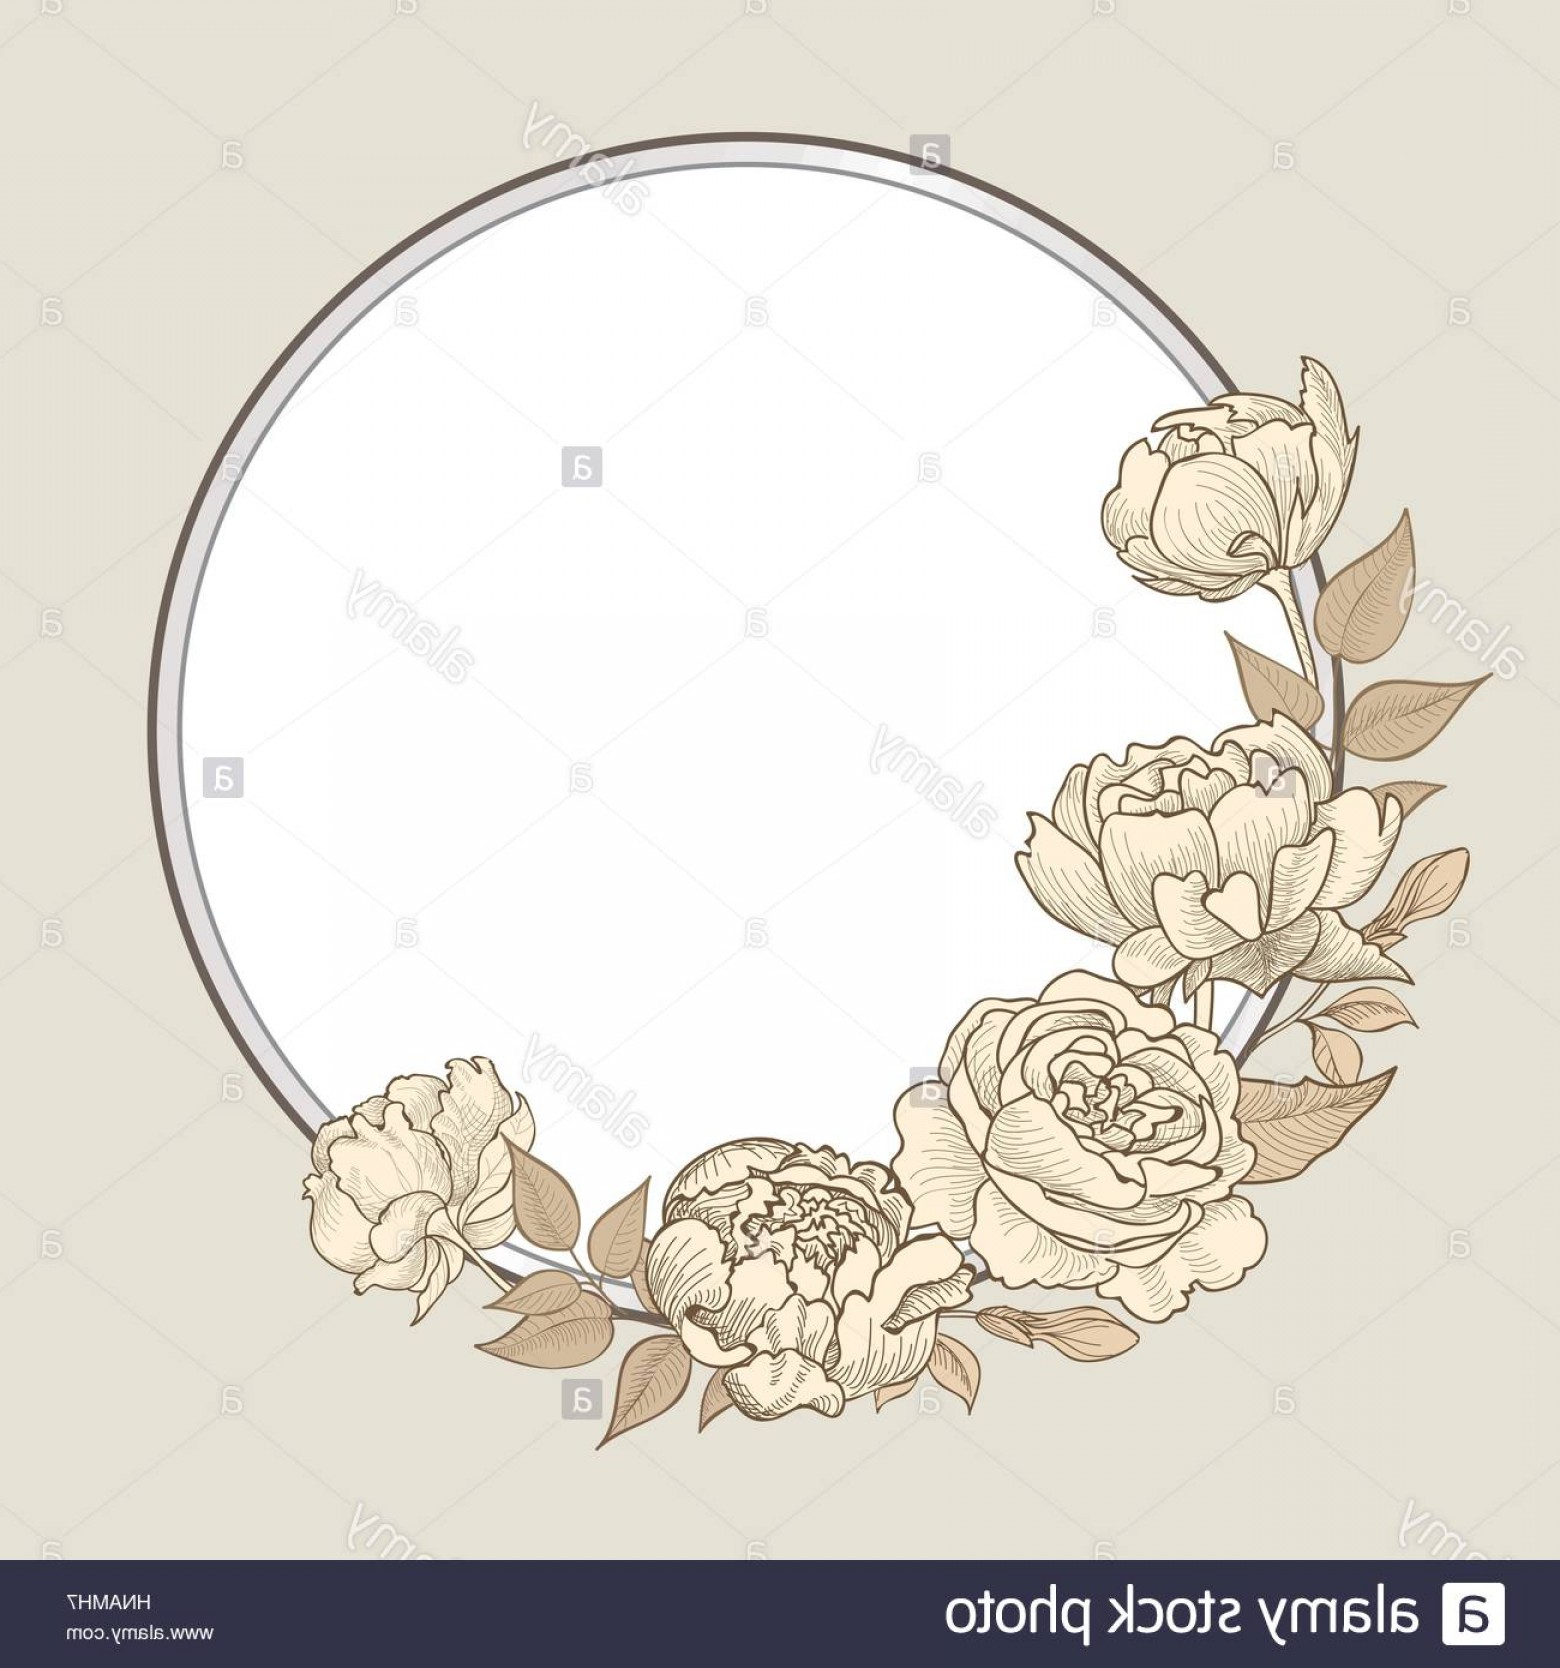 Vector Flourish Backgrounds: Stock Photo Flower Frame Floral Border Vintage Flourish Background In Victorian